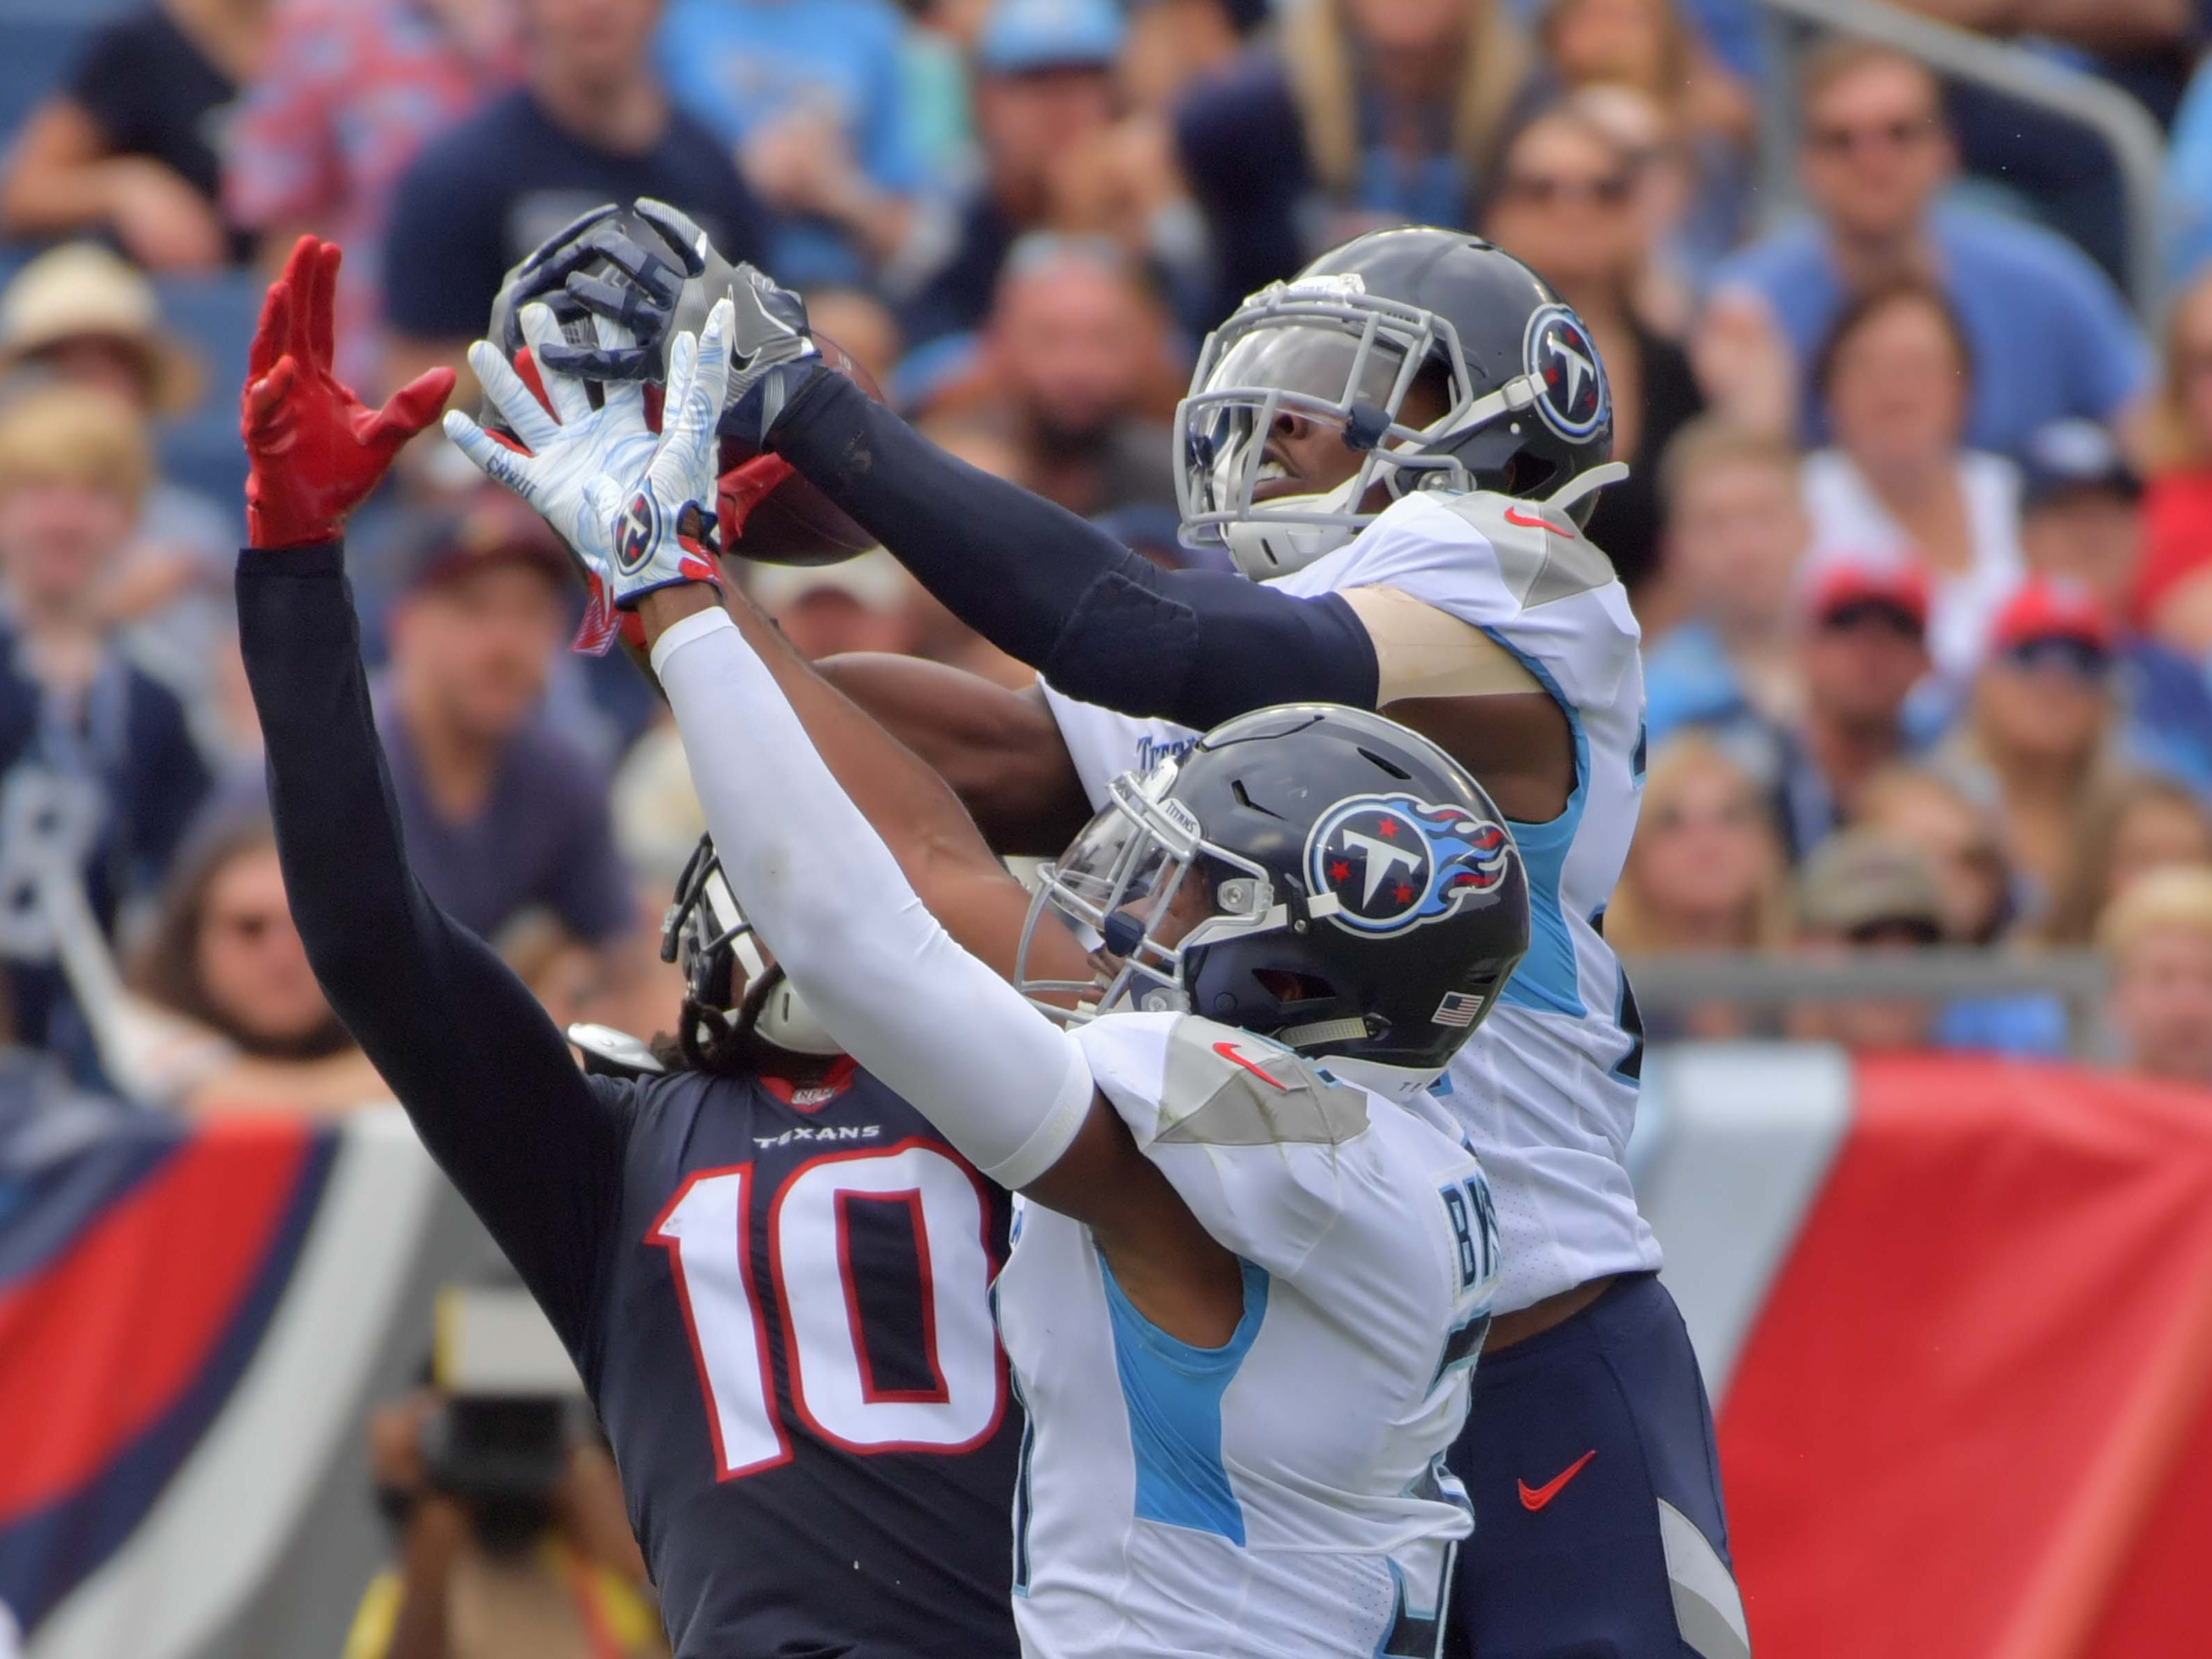 18. Titans (27): When pair of DBs (Kevin Byard, Dane Cruikshank) provide your biggest offensive play, there's a problem. But kudos on creativity front.